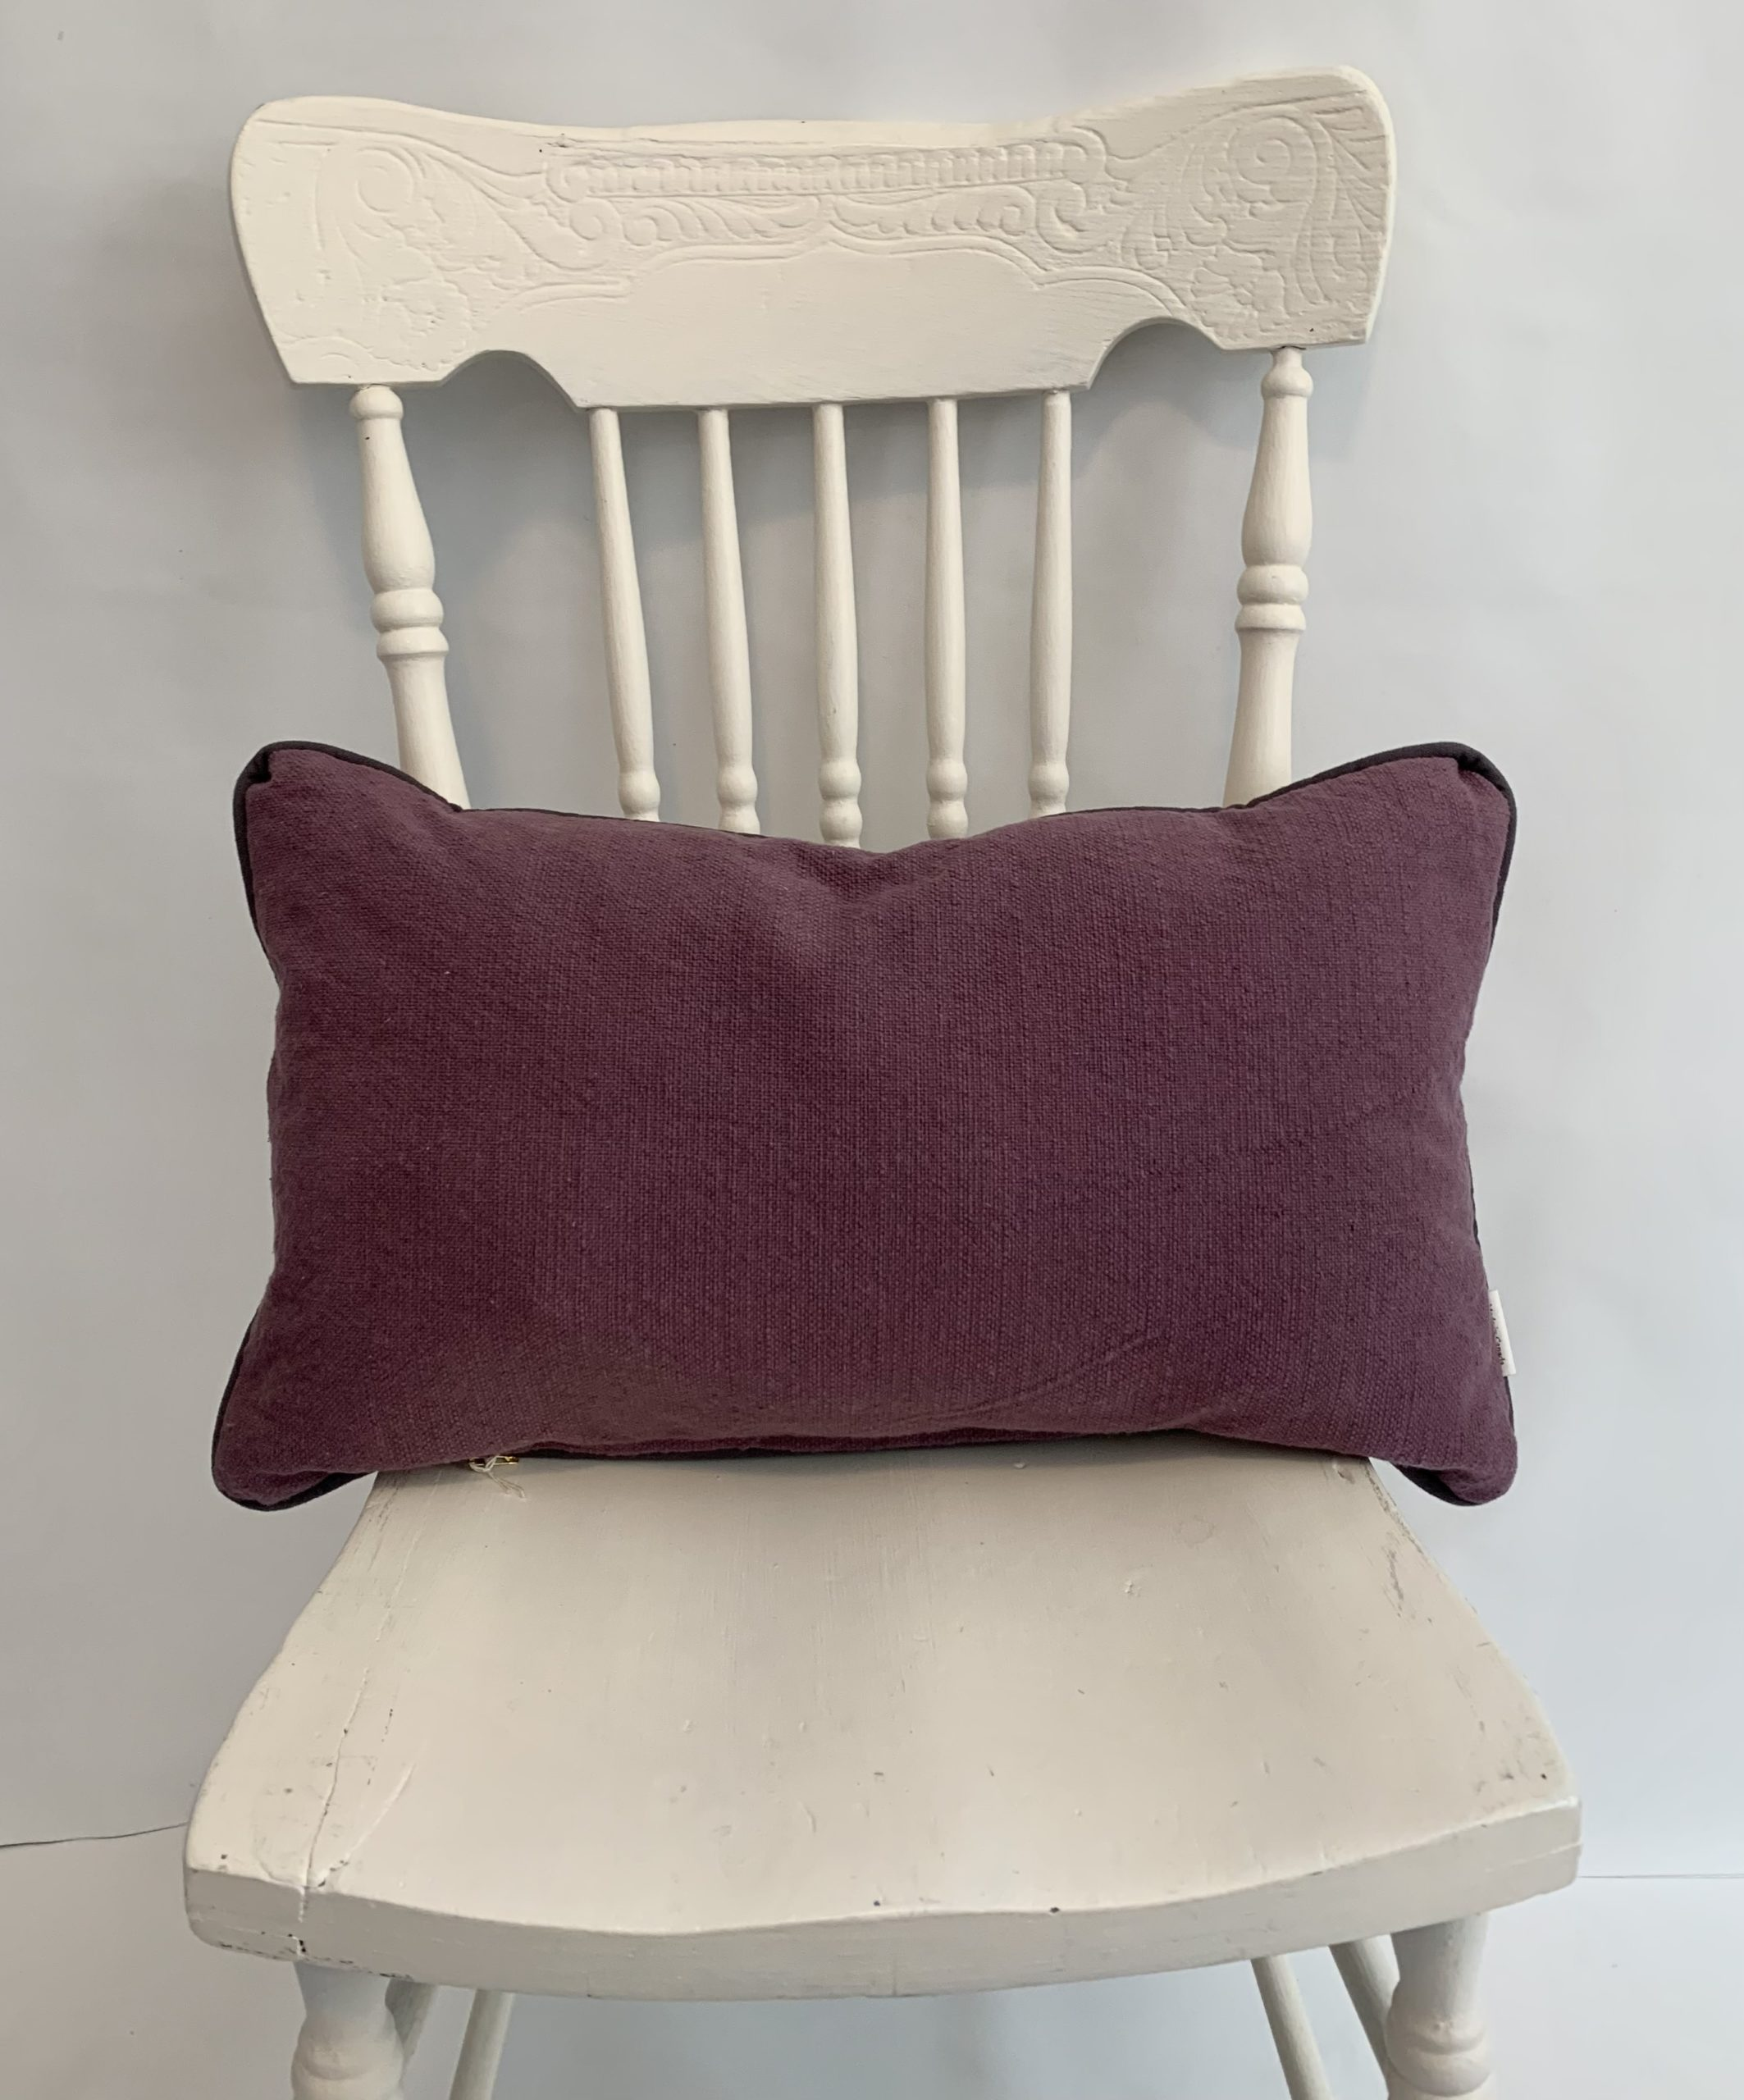 ultra violet and grey pillow covers 12x20